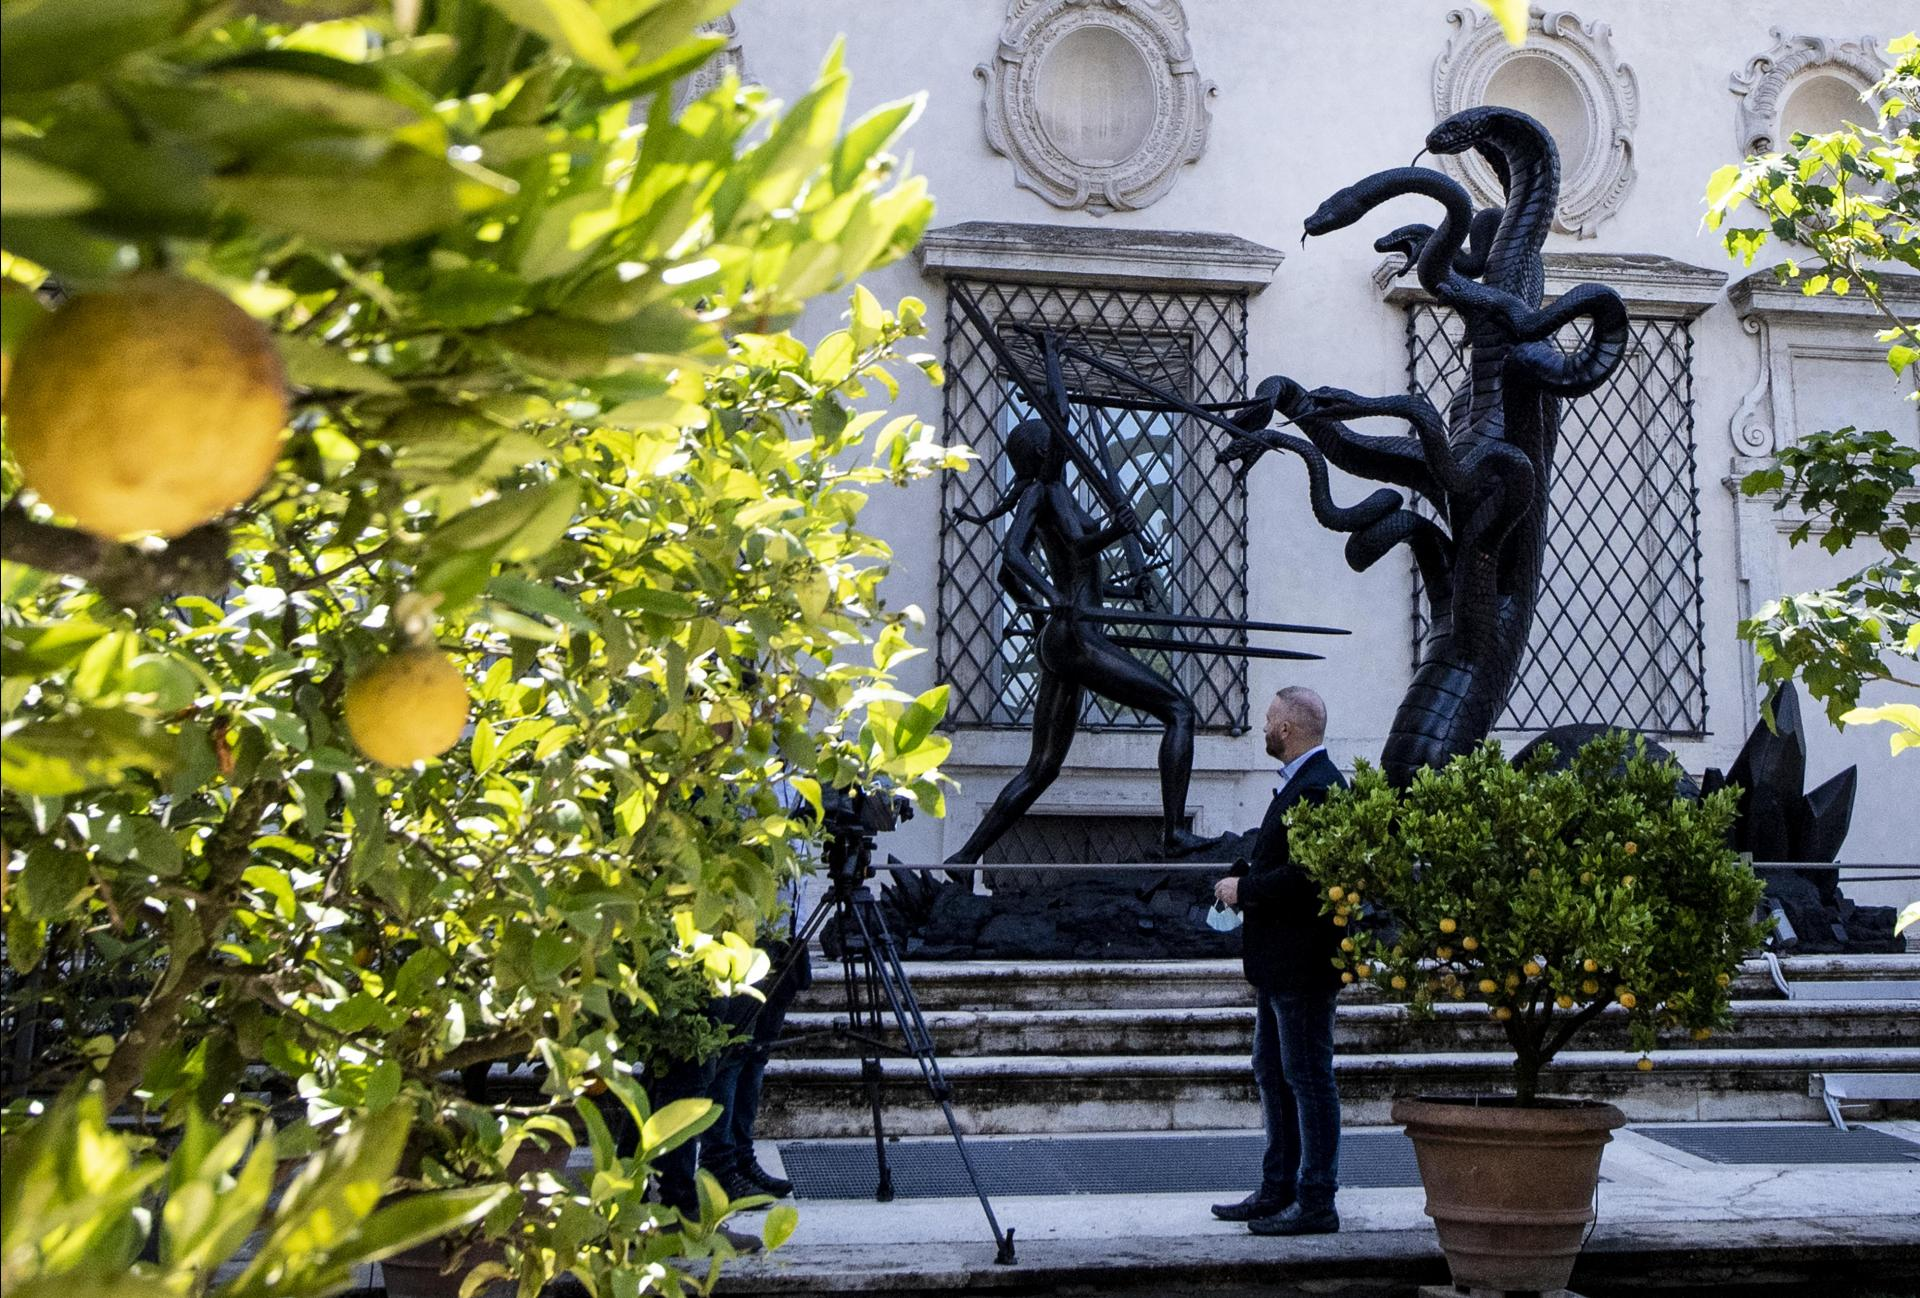 Outside on the terrace, Hirst's towering sculpture 'Hydra and Kali overlooks the citrus trees.